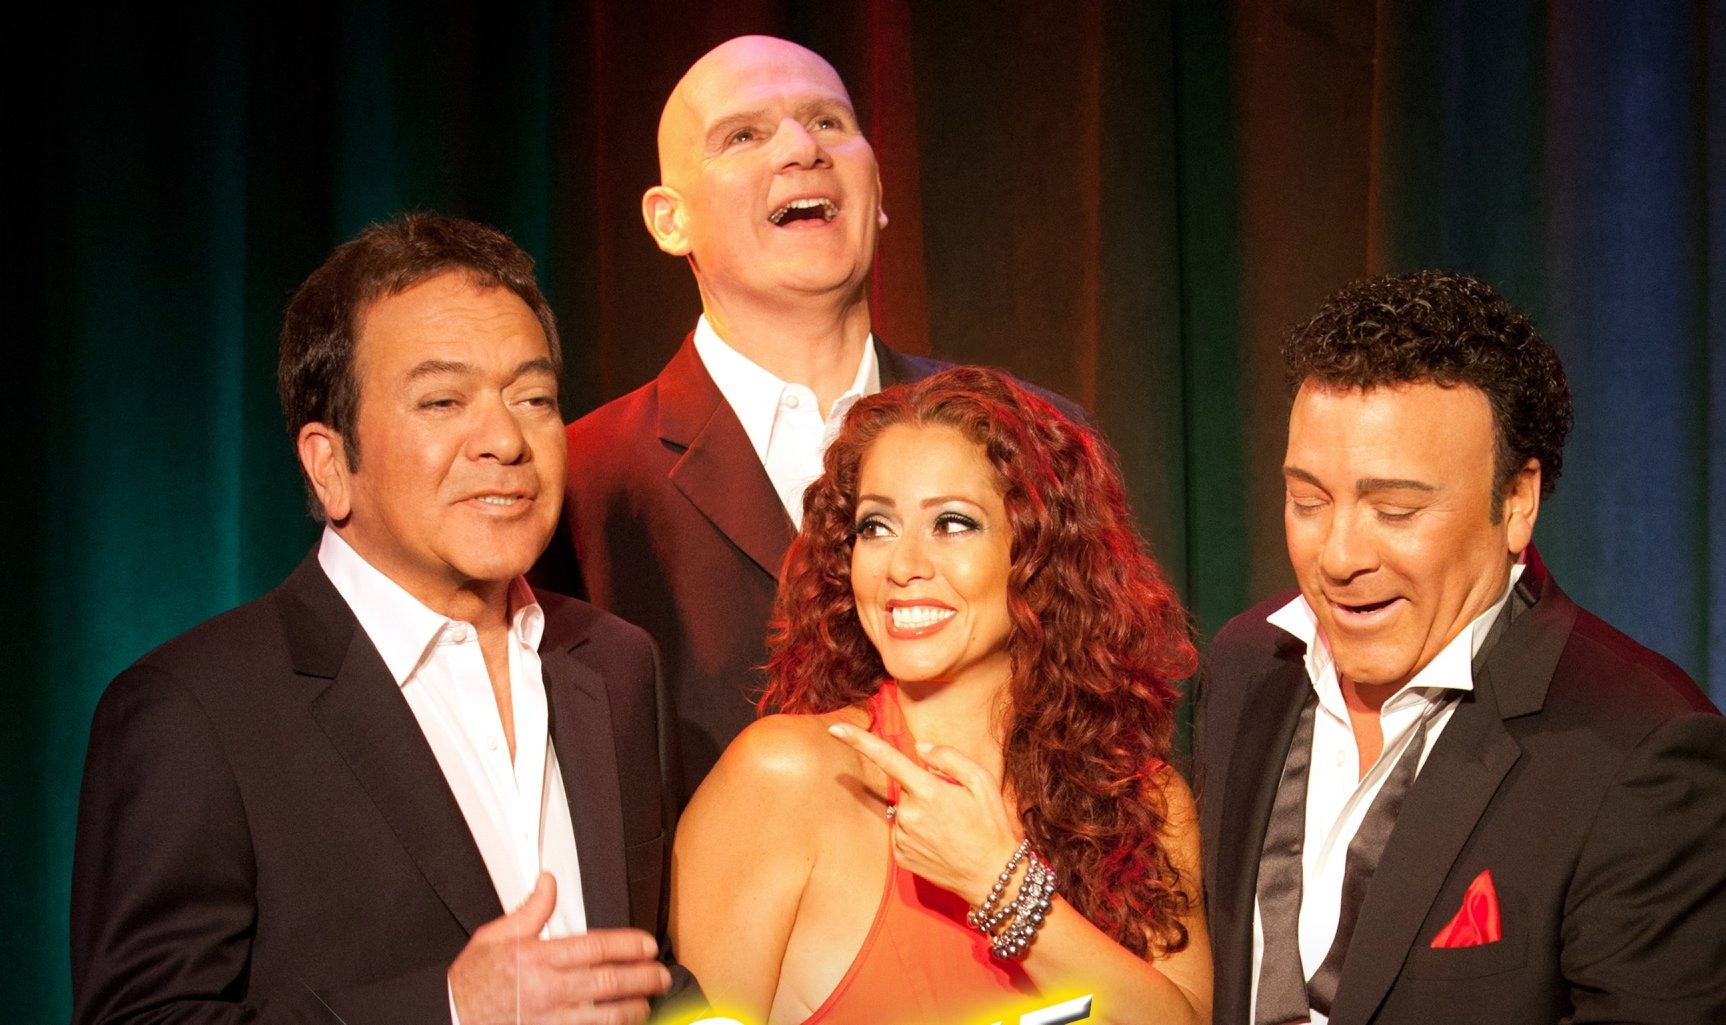 The Scintas – brothers Joe and Frank Scinta, Peter O'Donnell and Janien Valentine – perform Dec. 4 and 5 at the Riviera Theatre.